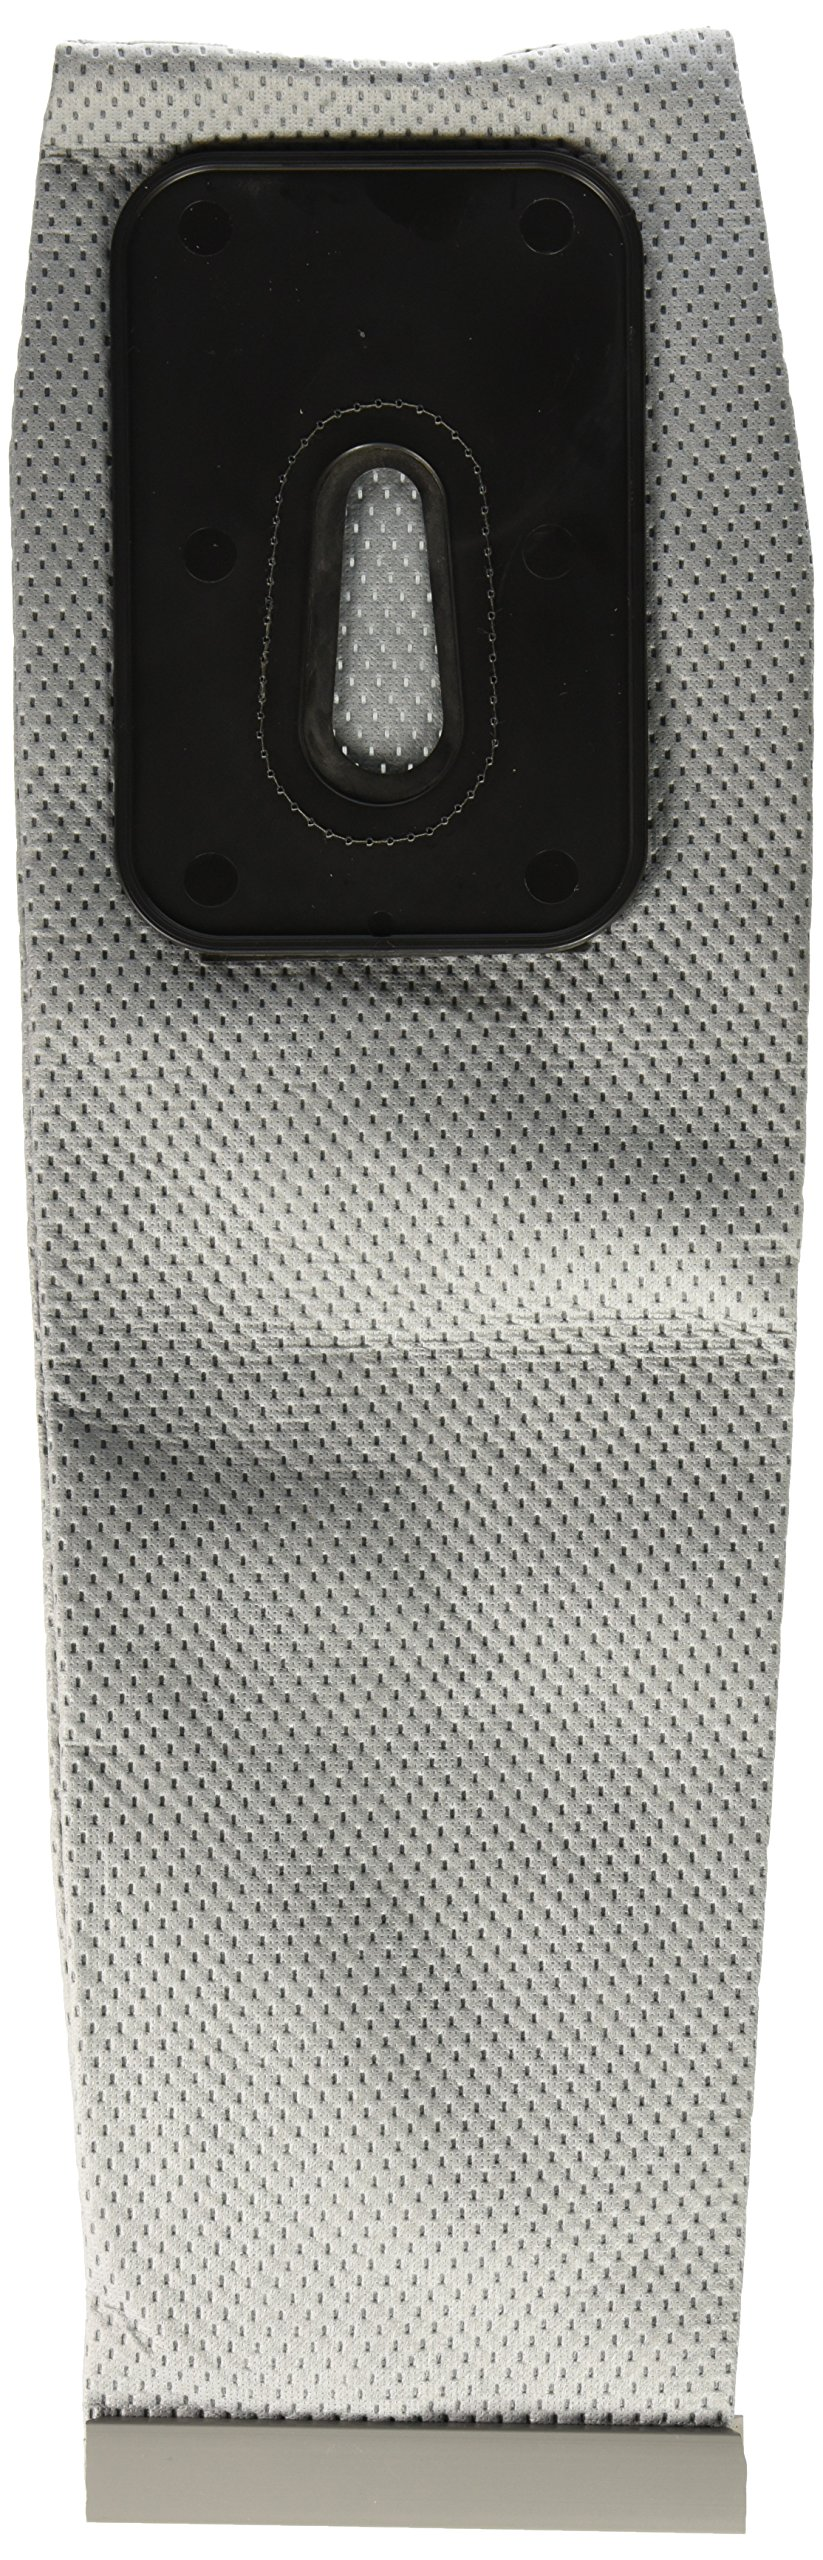 Oreck Commercial PCB9300 Permanent Cloth Bag by Oreck Commercial